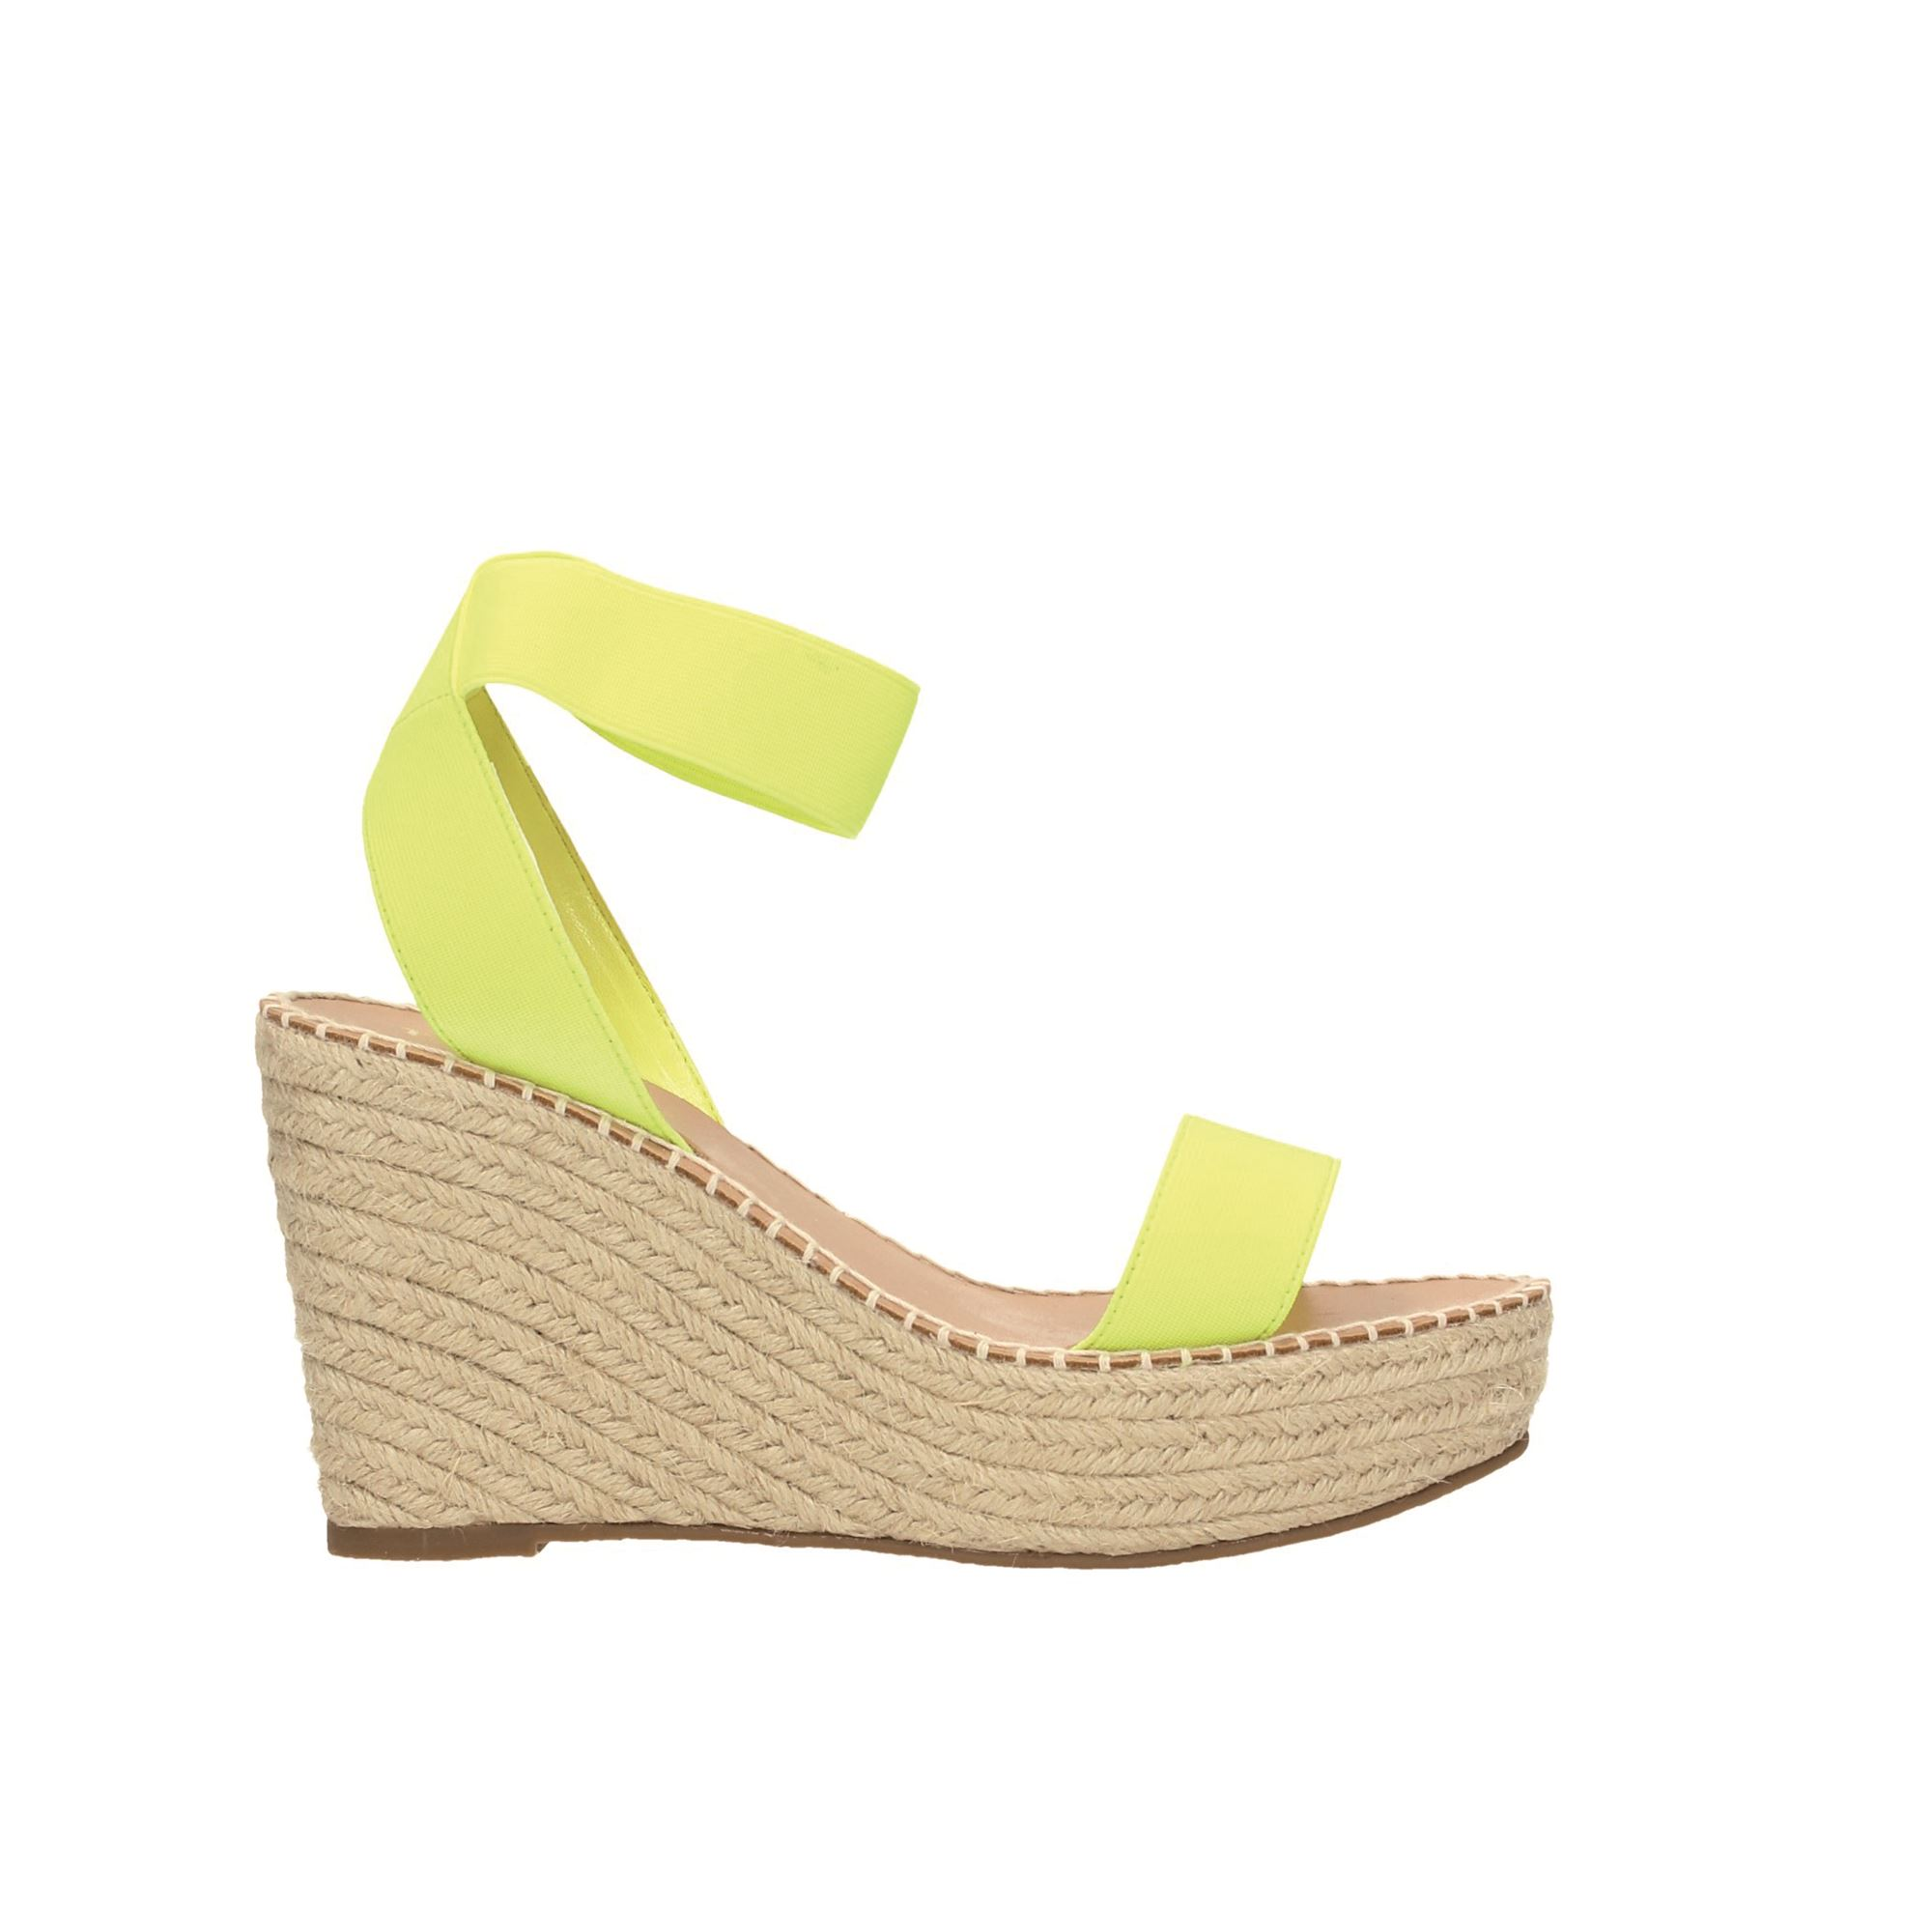 Tata Italia Shoes Woman Sandali Yellow 1705-1802